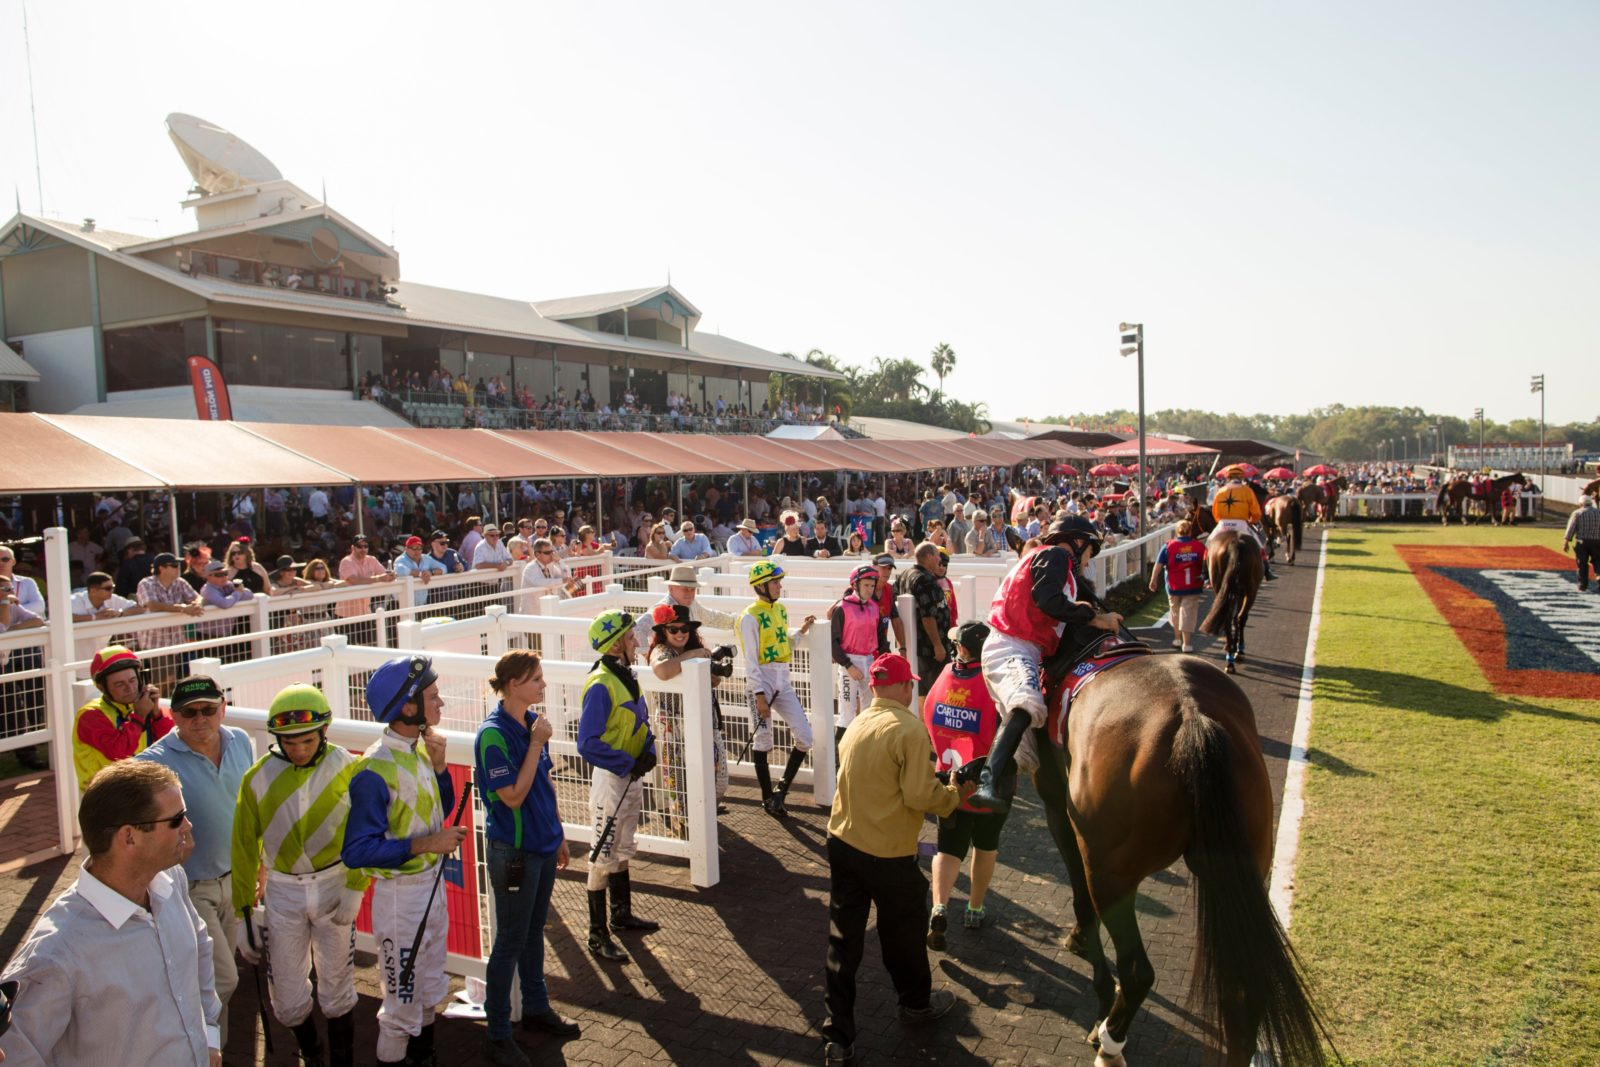 A large crowd of people cheer as horses and jockeys get ready to run the race